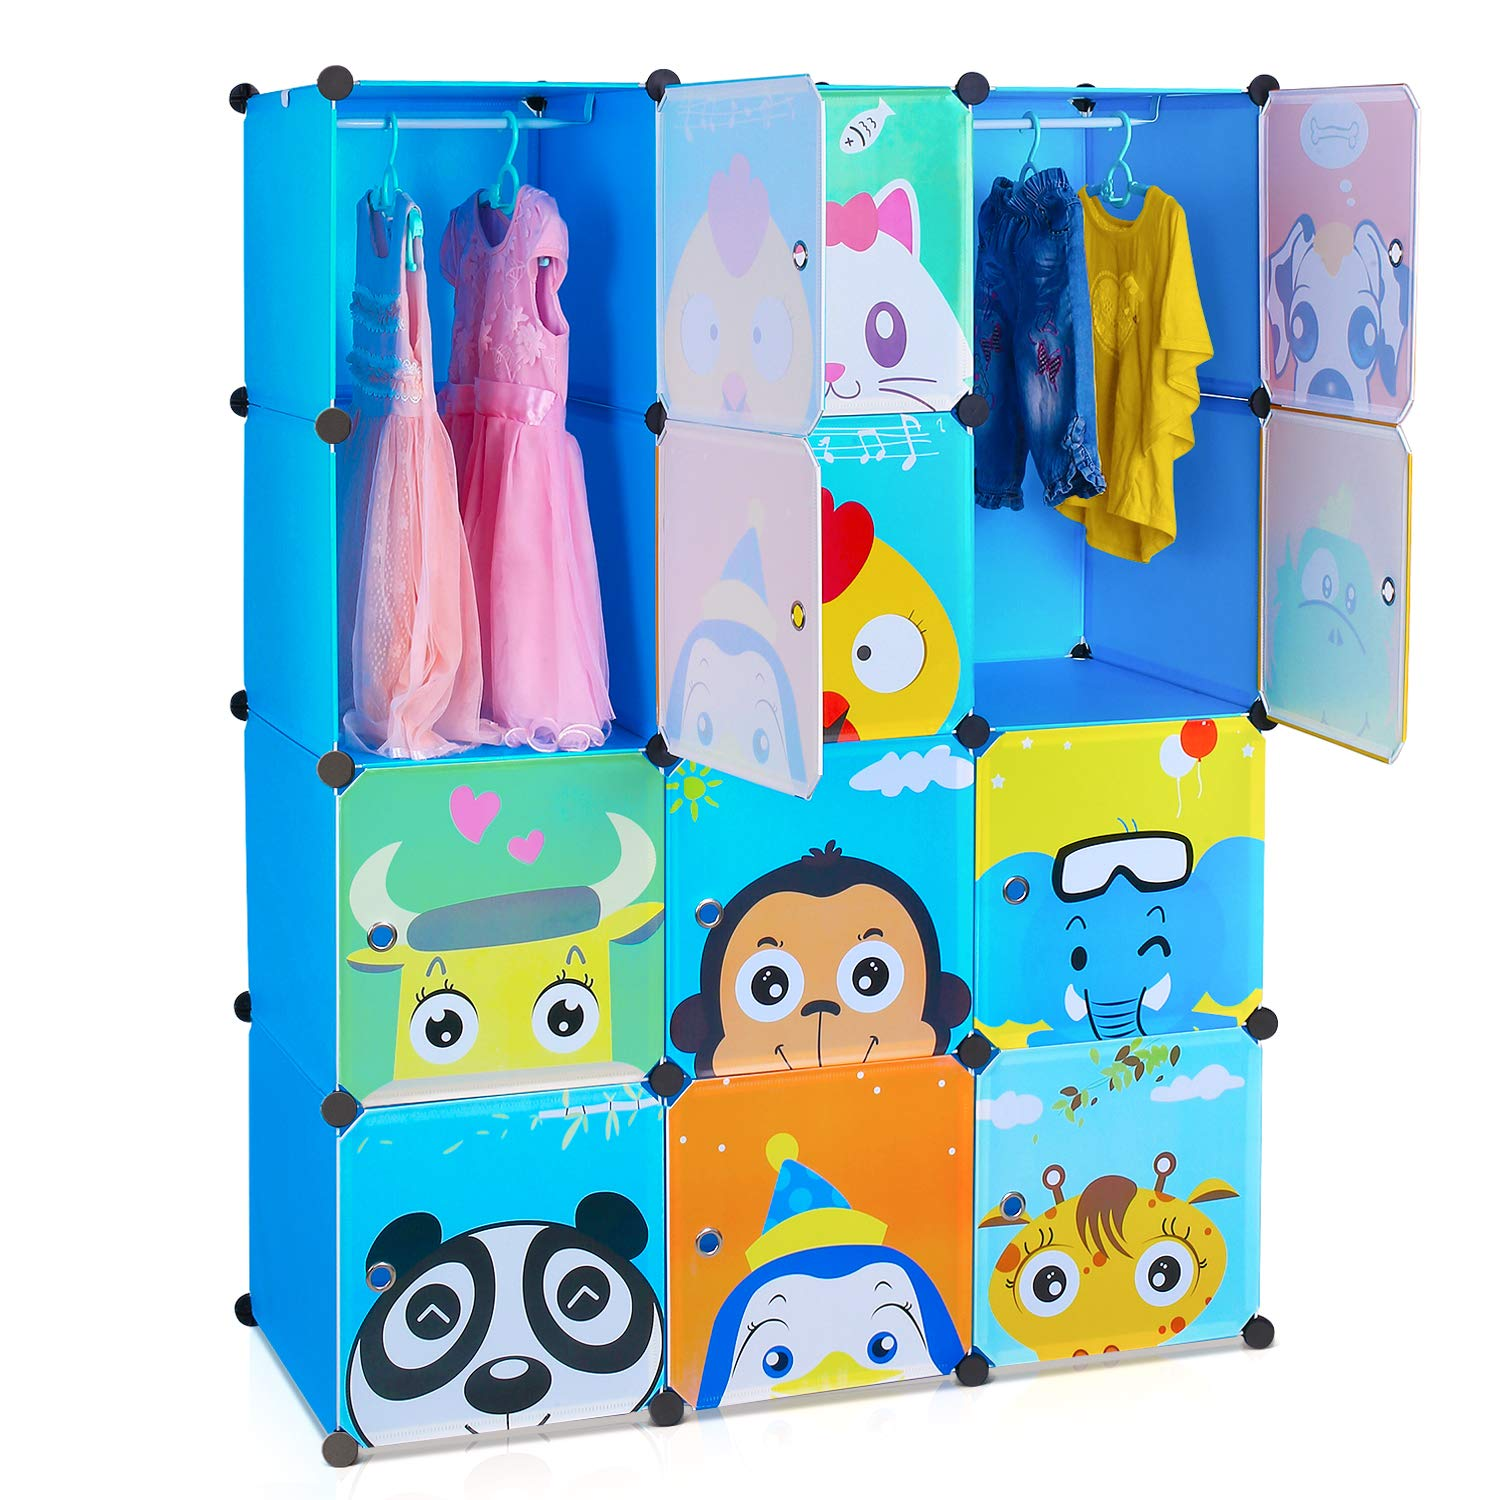 HOMFA 12-Cube DIY Cabinet Storage Unit Organiser for Kids Stackable Plastic Cube Shelves Multifunctional Modular Cupboard Wardrobe with Animal Cartoons on Doors for Clothes Shoes Toys Books School Bags Yellow (110 x 46.5 x 145 cm) HF